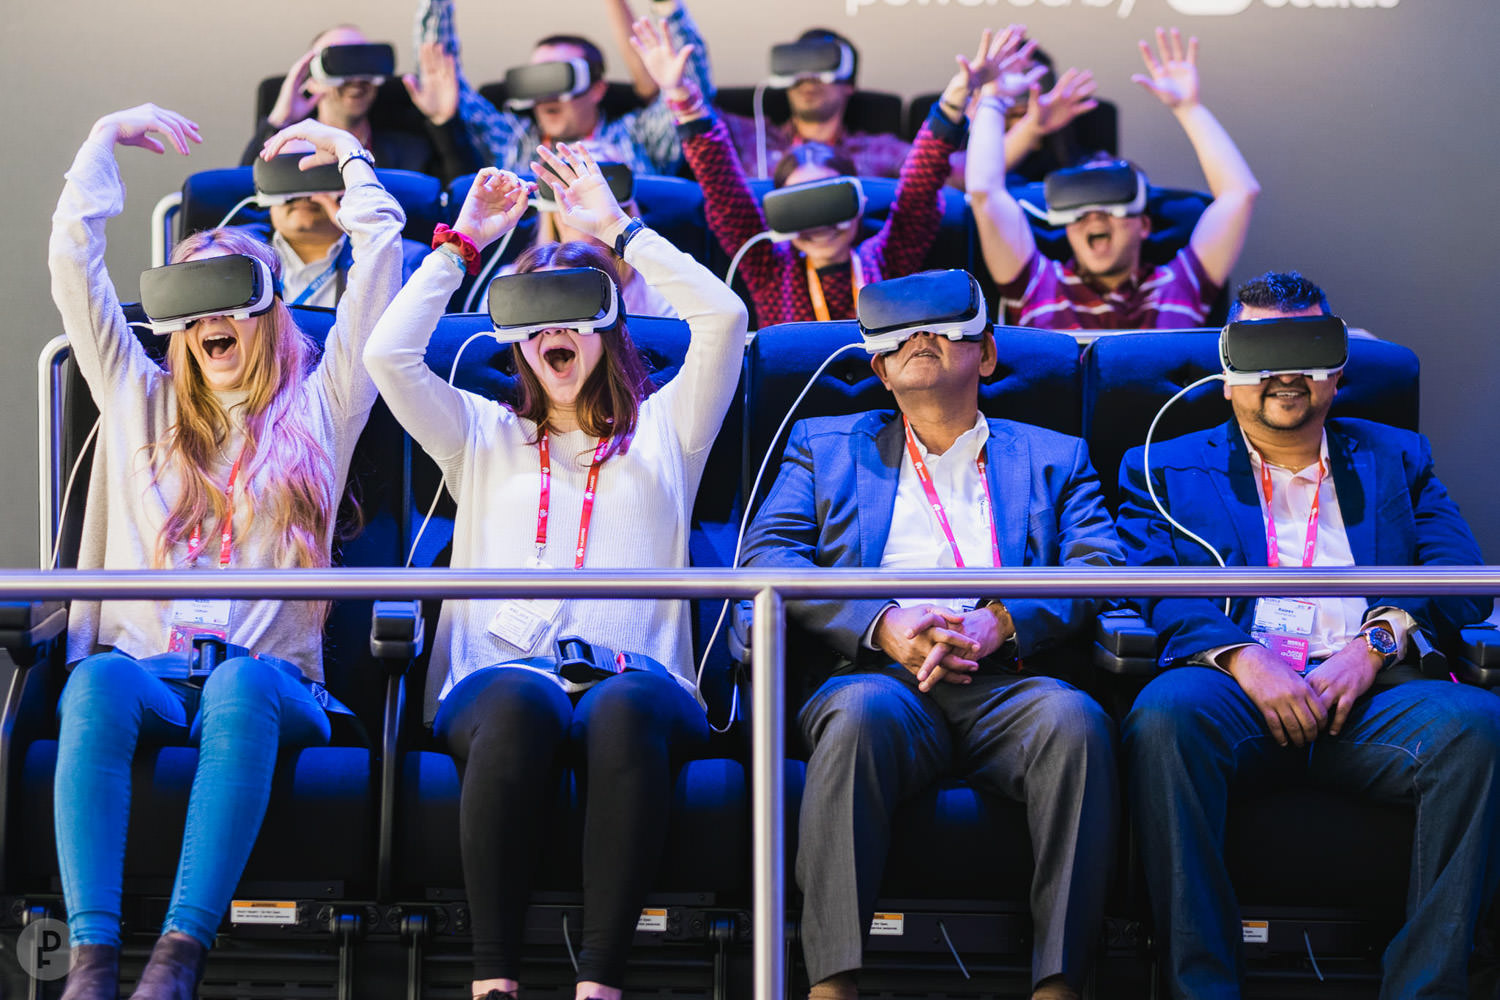 A photograph from the Mobile World Conference event in Barcelona (Spain), of people having fun on a virtual reality machine.